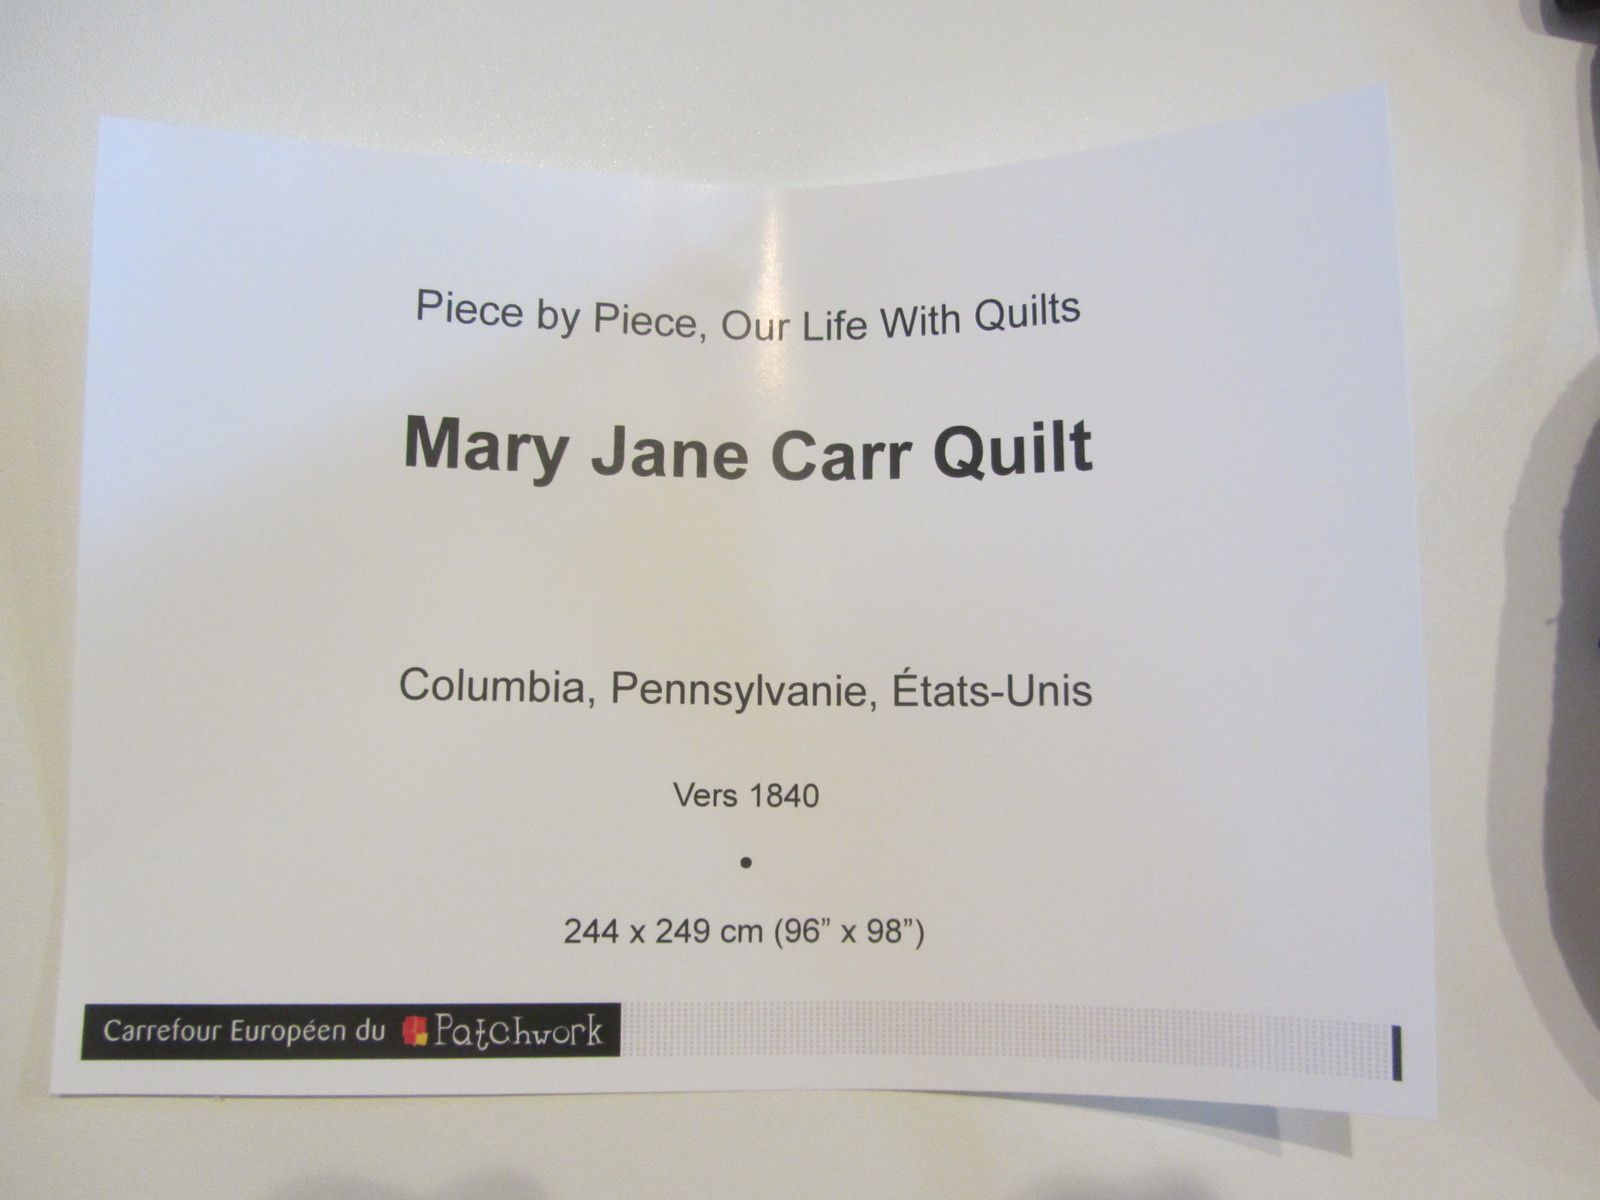 SMM : Piece by piece our life with quilts